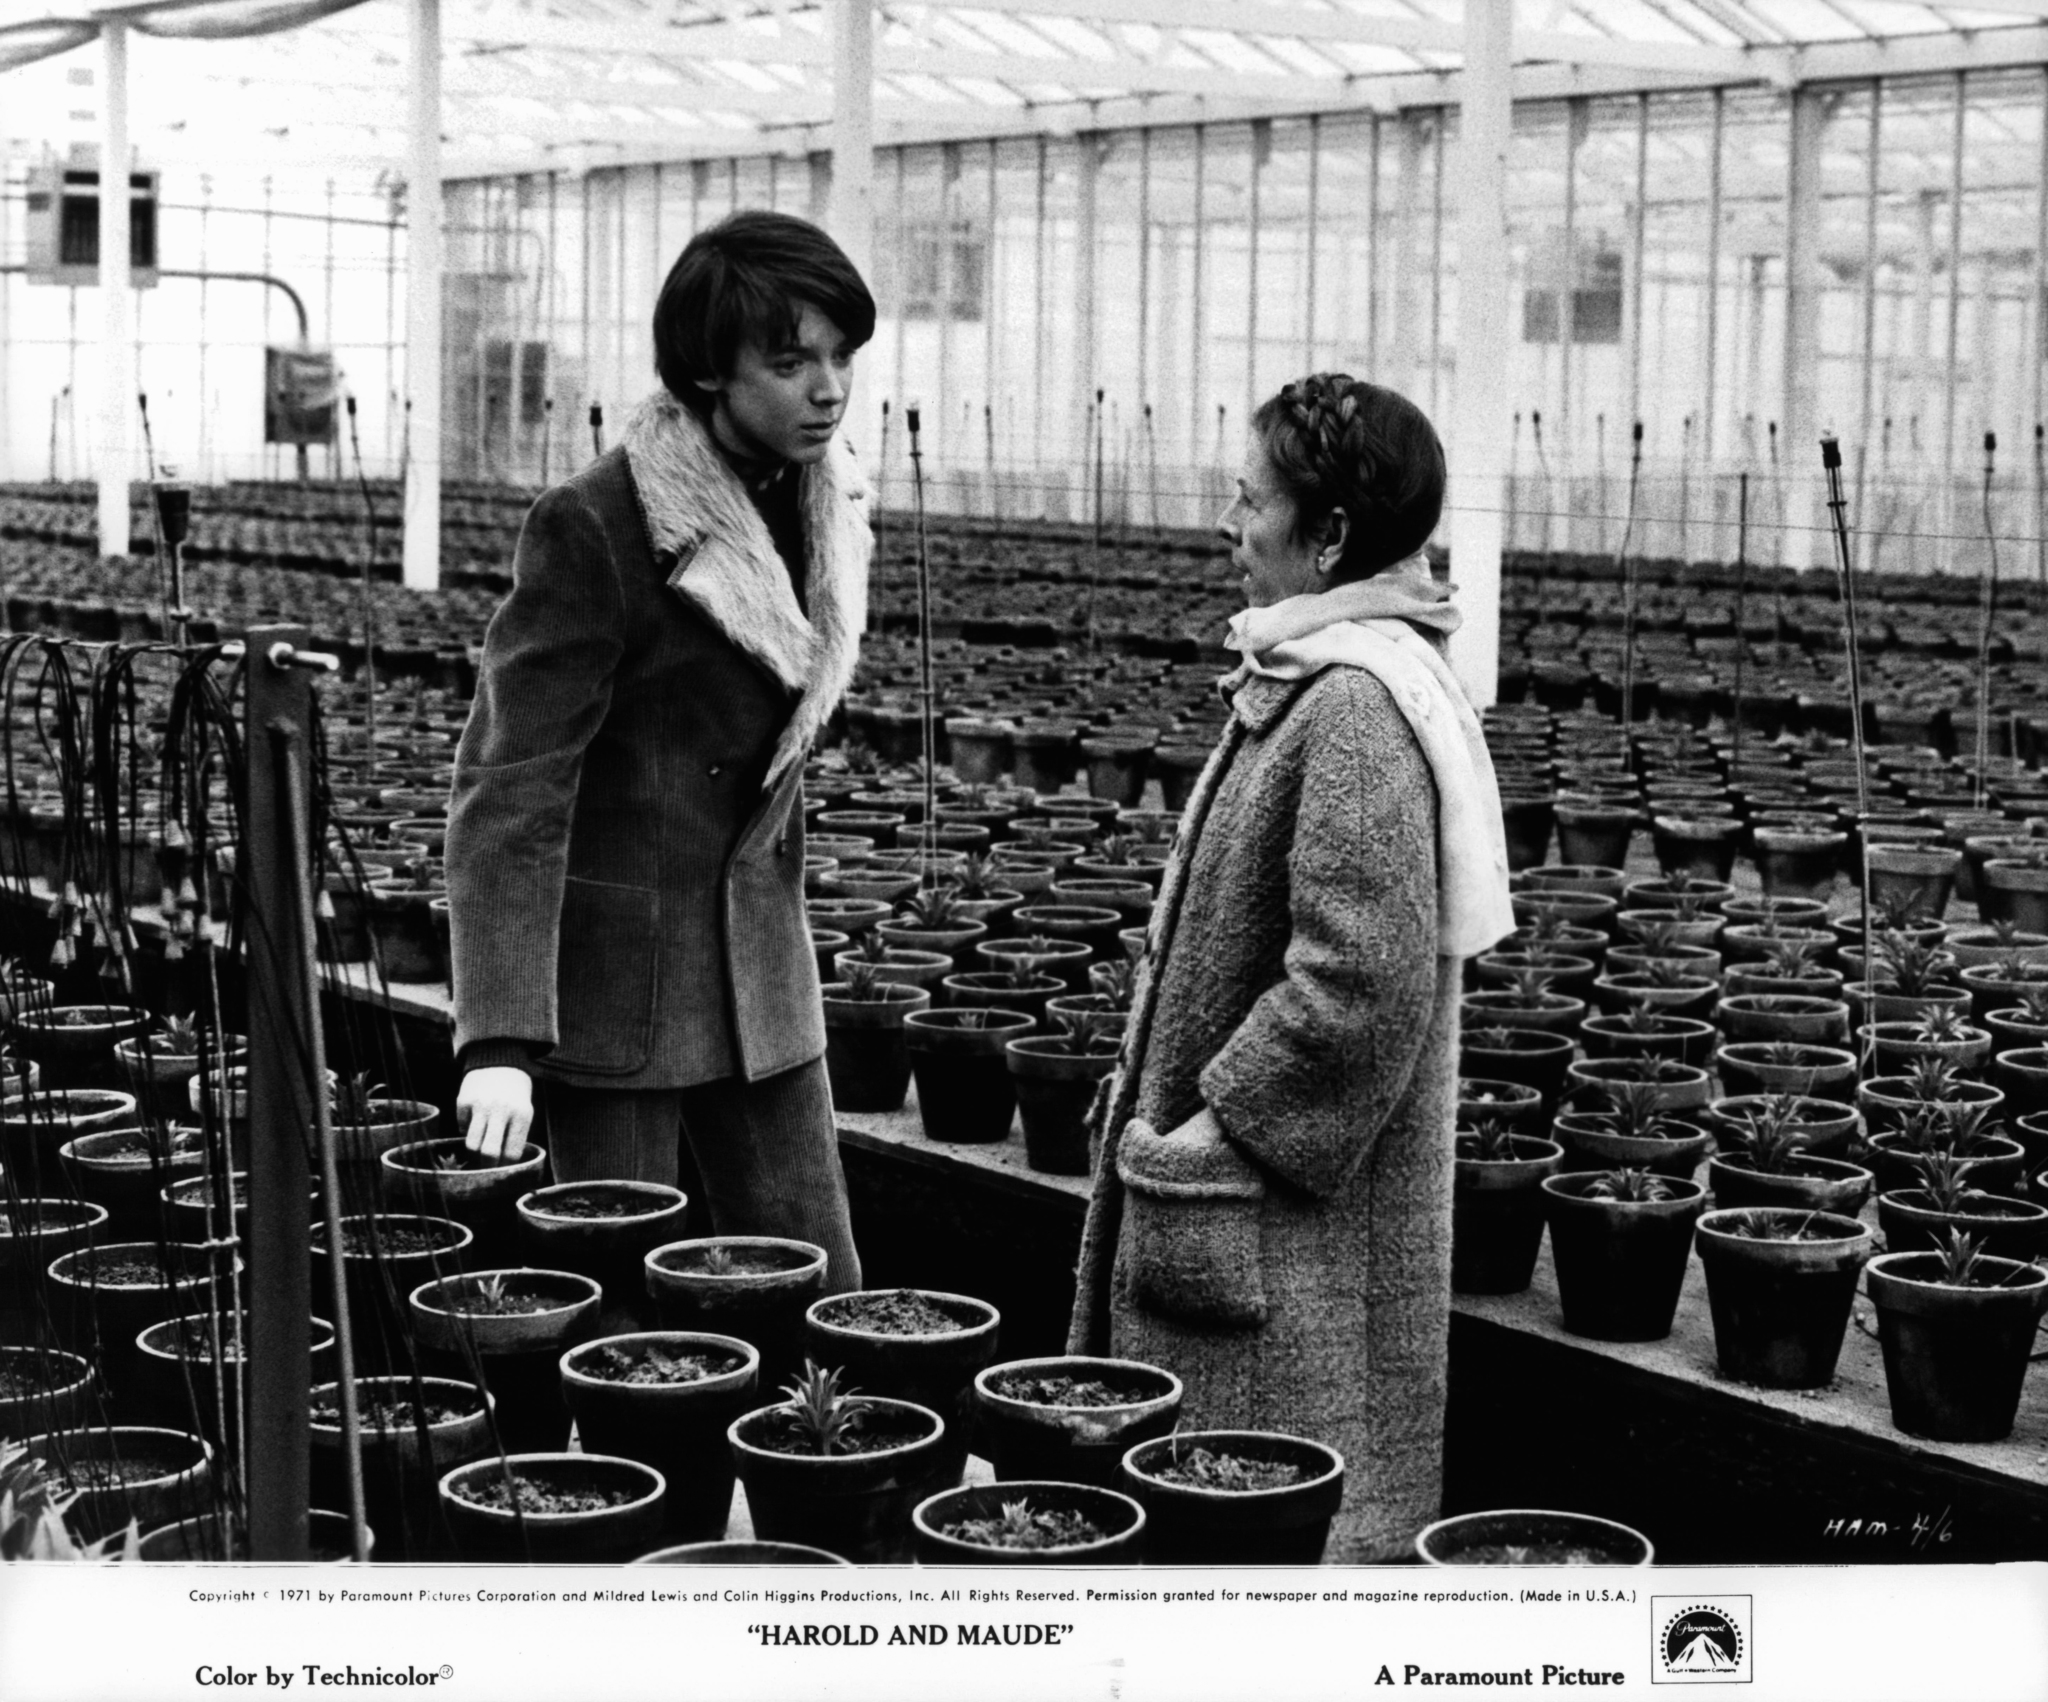 harold and maude (1971) movie download